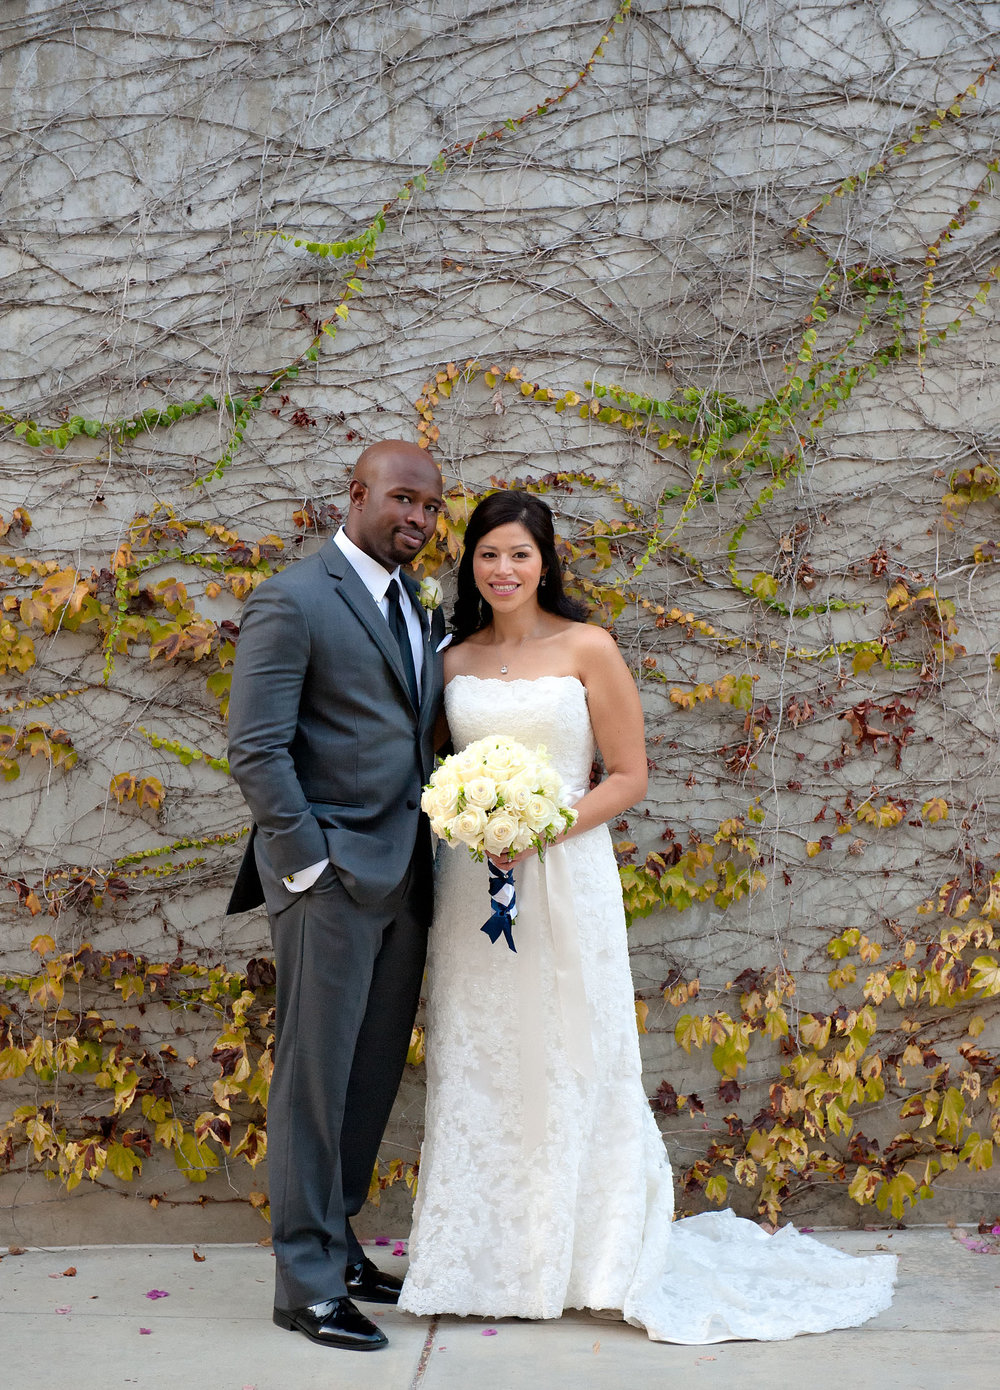 Bride and groom portrait at the City of Brea Community Center.